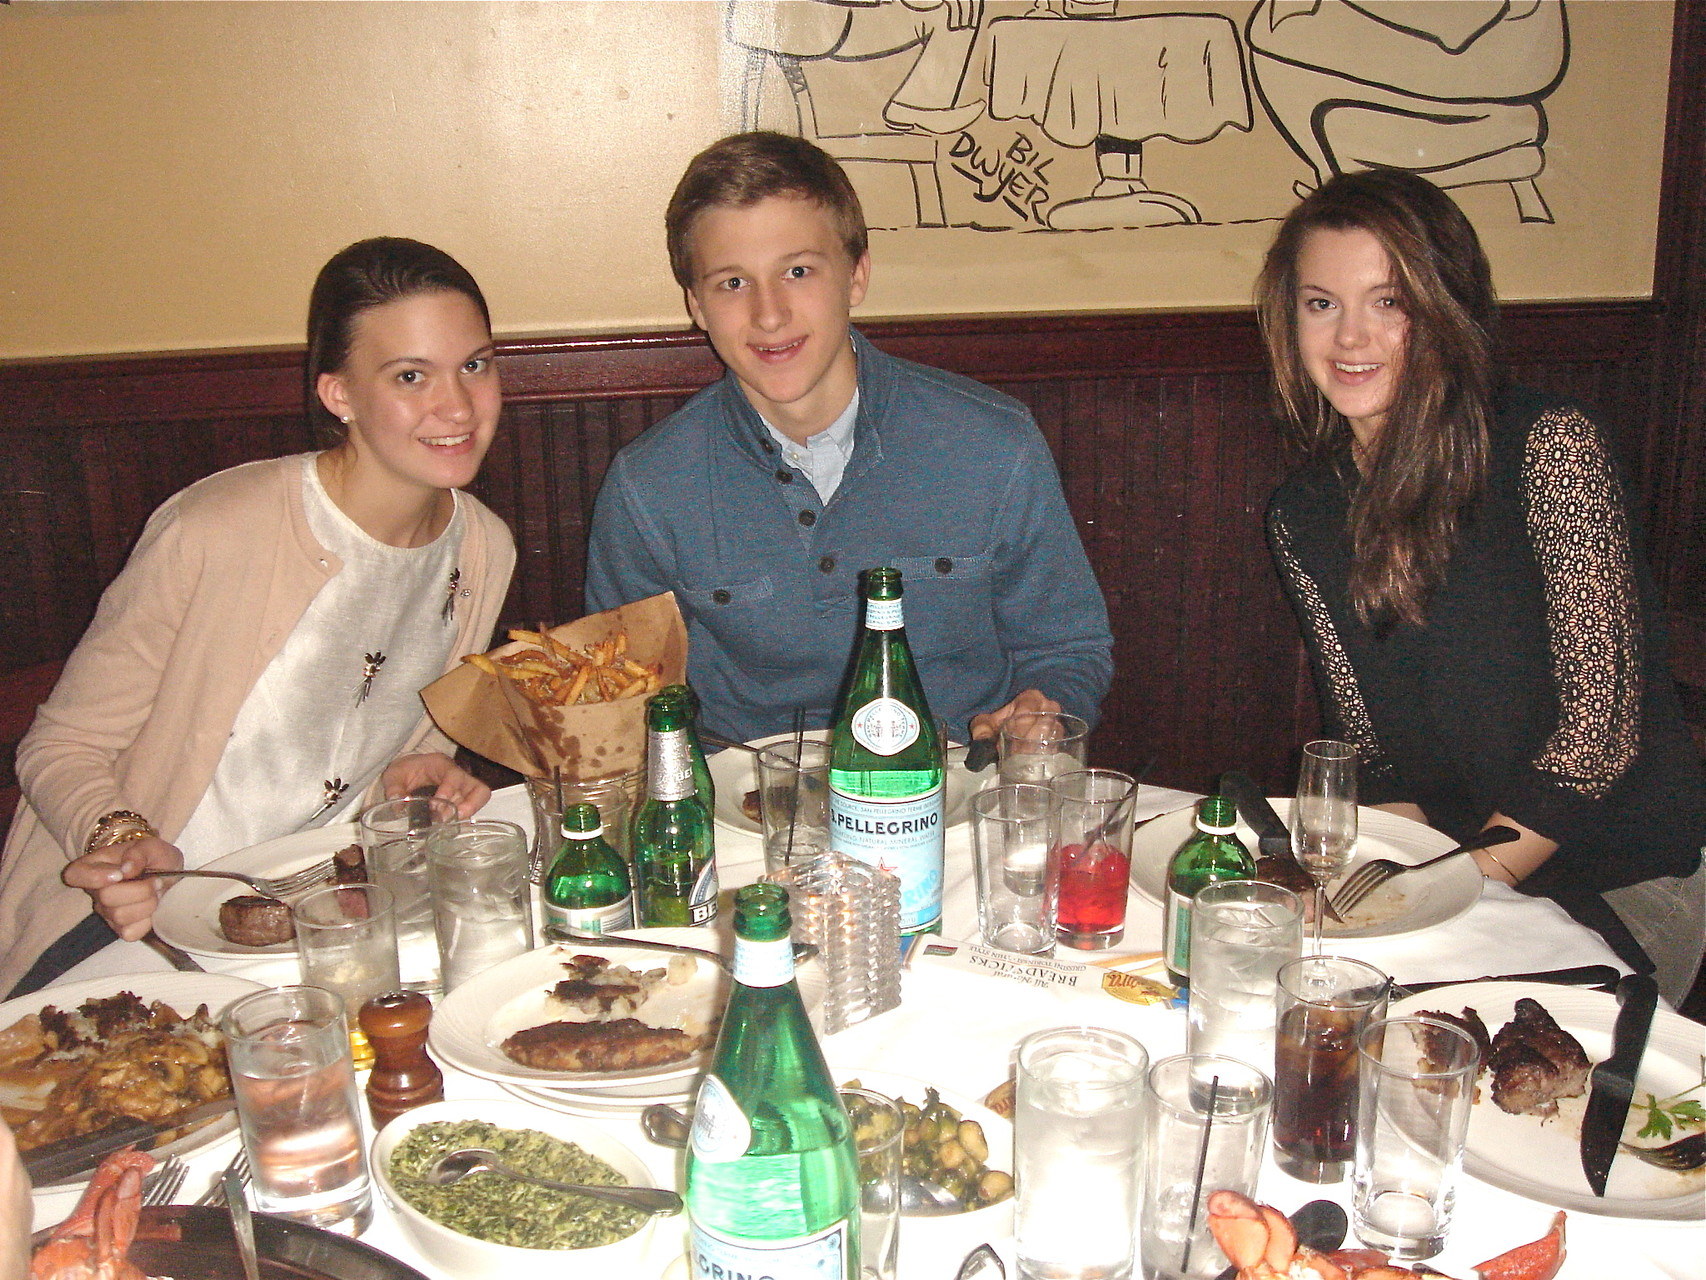 Ellie, Jack & Kate 2-28-15 Birthday Dinner at Palm